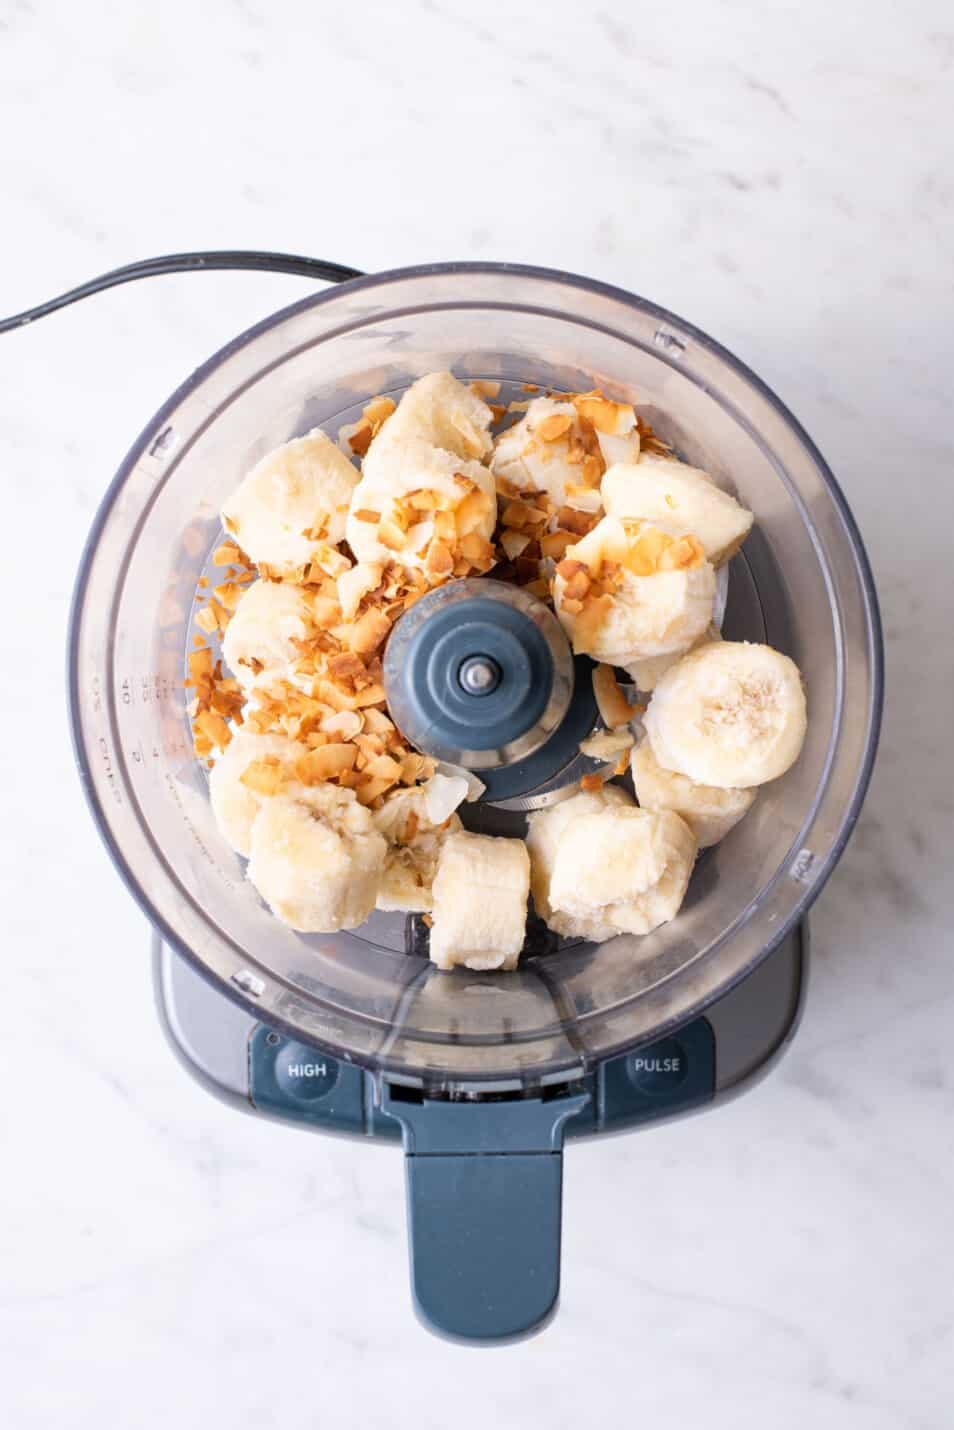 Frozen banana chunks in a food processor with toasted coconut flakes.